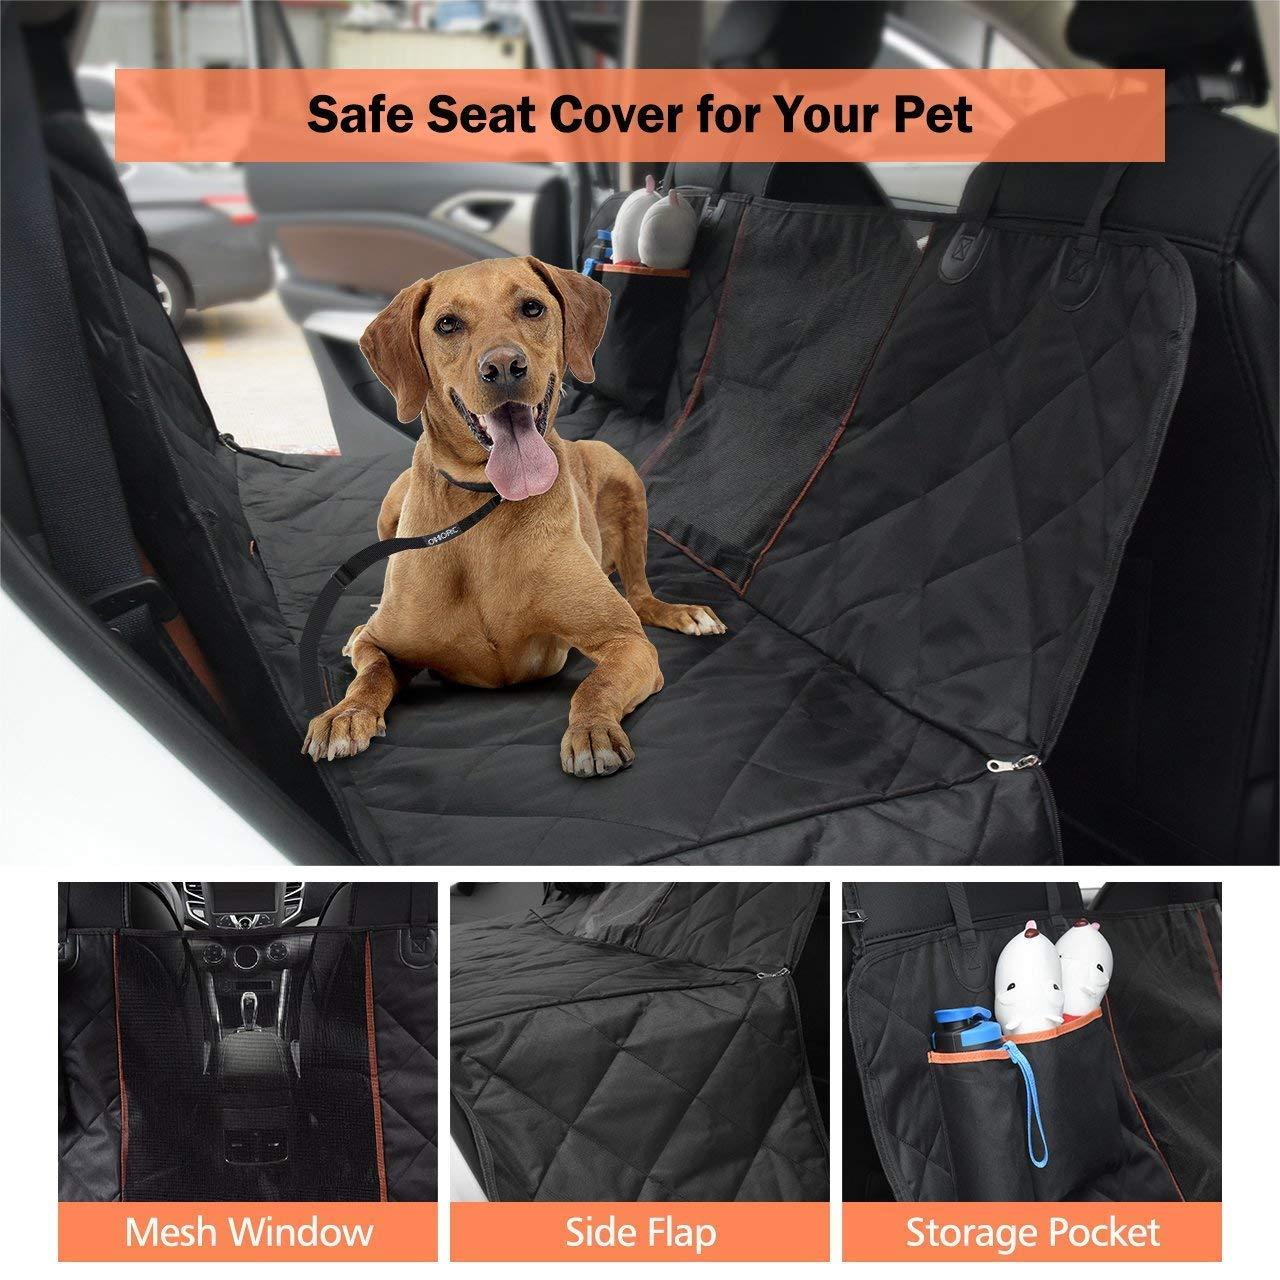 Dog Seat Cover for Cars with Seatbelts Heavy Duty /& Waterproof Dog Car Hammock with a Storage Pocket and Mesh Viewing Window OMORC Upgraded Version 137/×147 cm